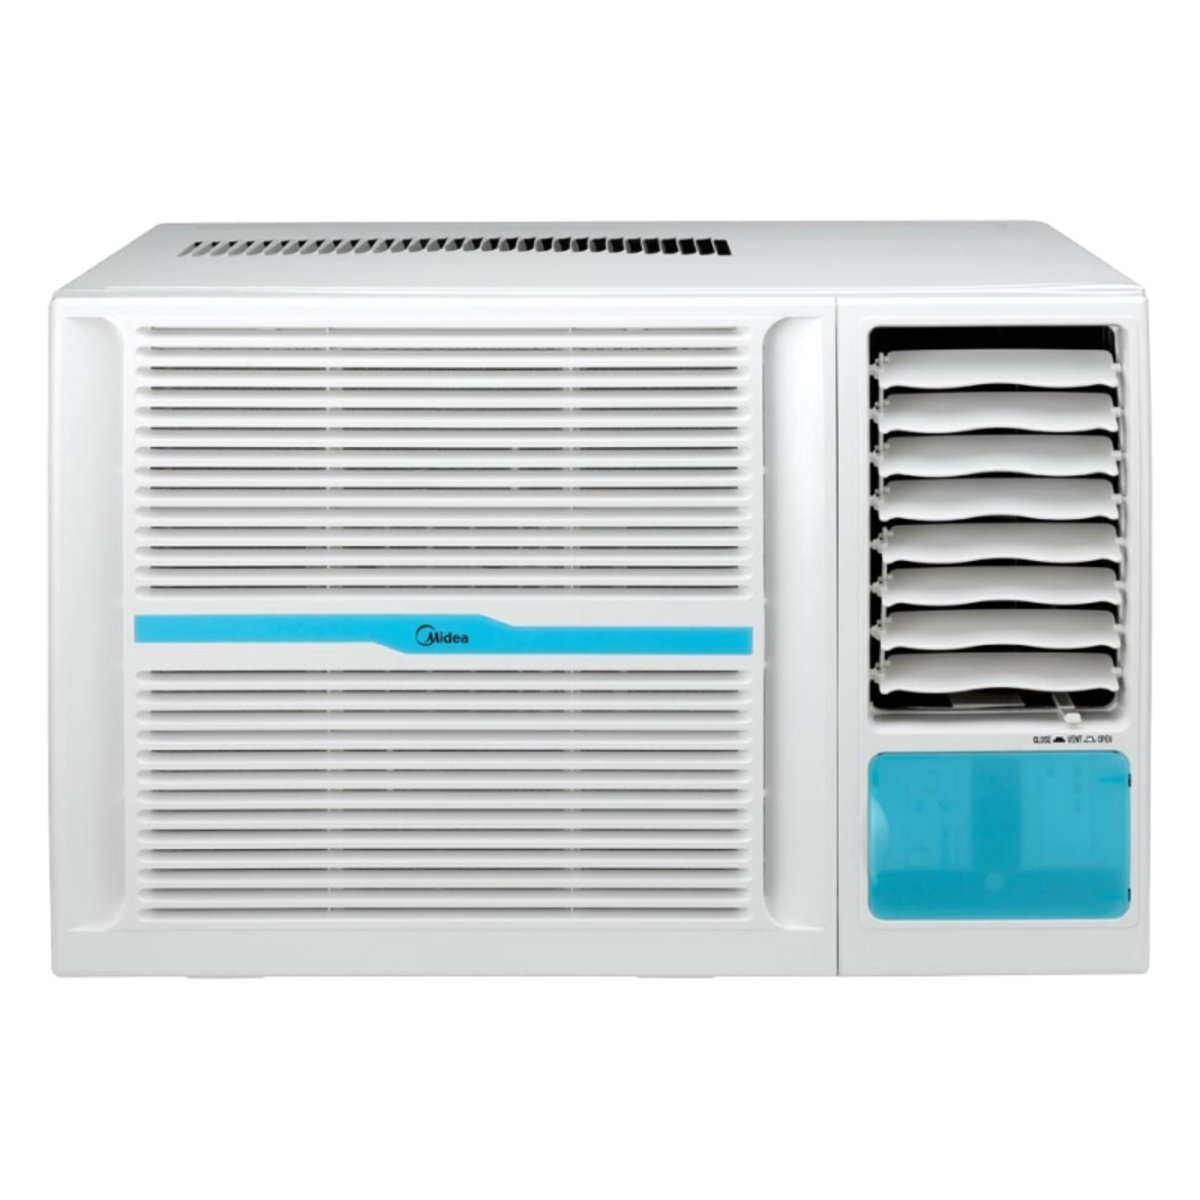 MWH12CM3X1 1.5HP WINDOW TYPE AIR CONDITIONER